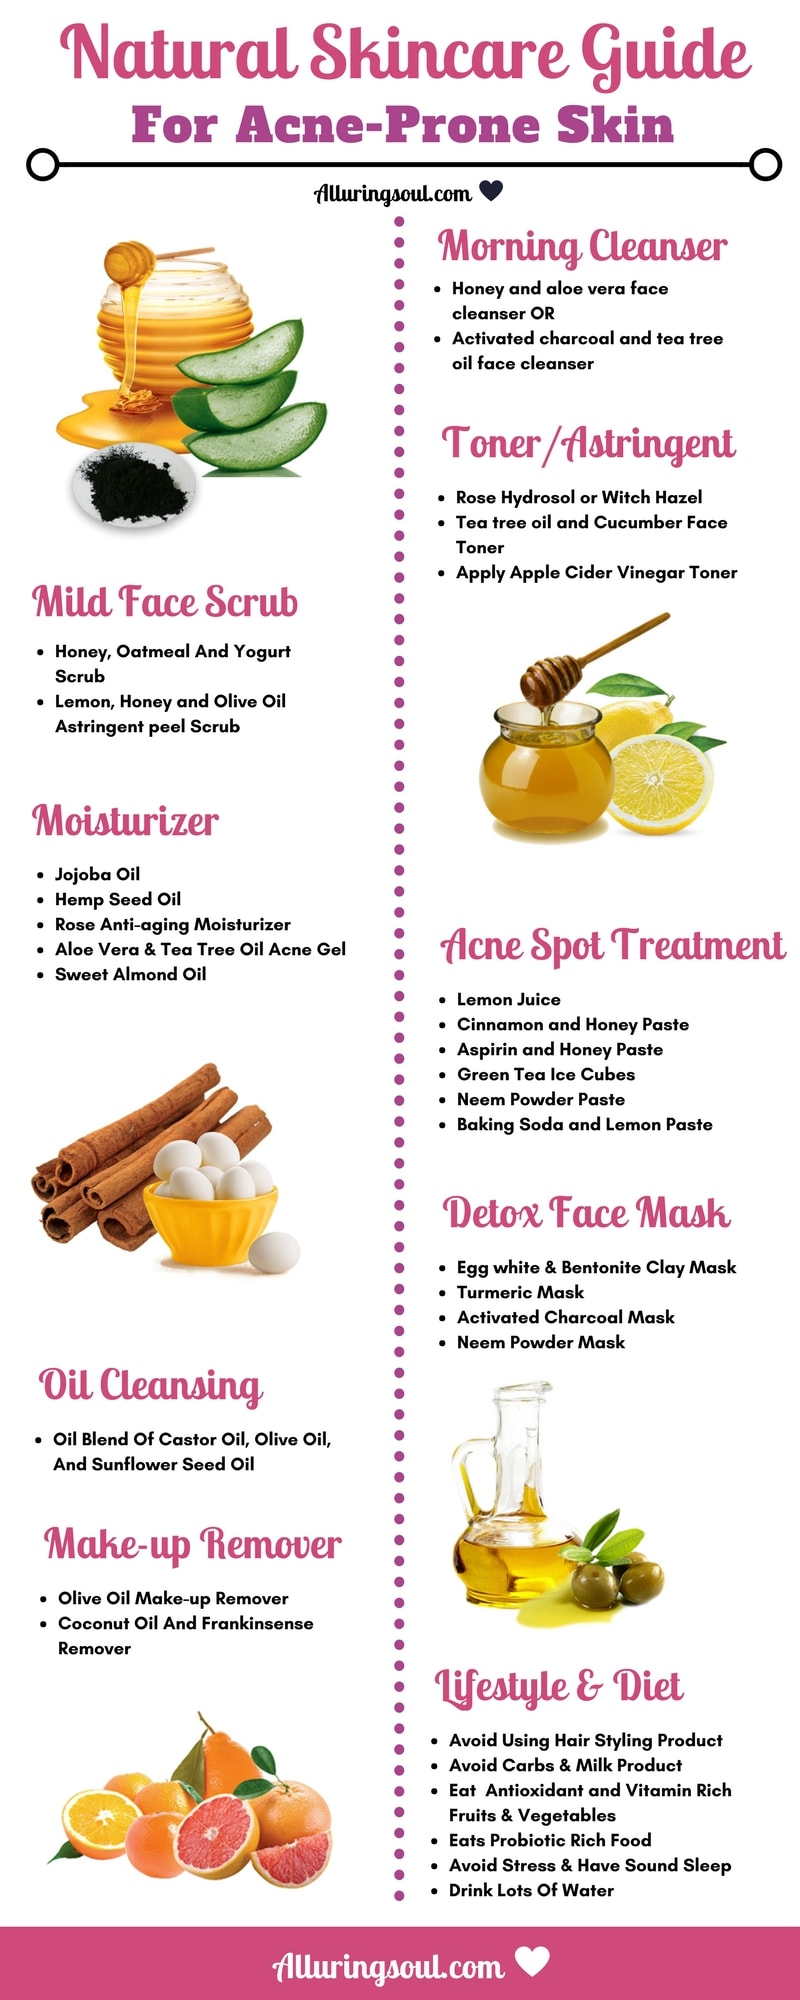 Natural Skincare Guide for Acne Prone Skin